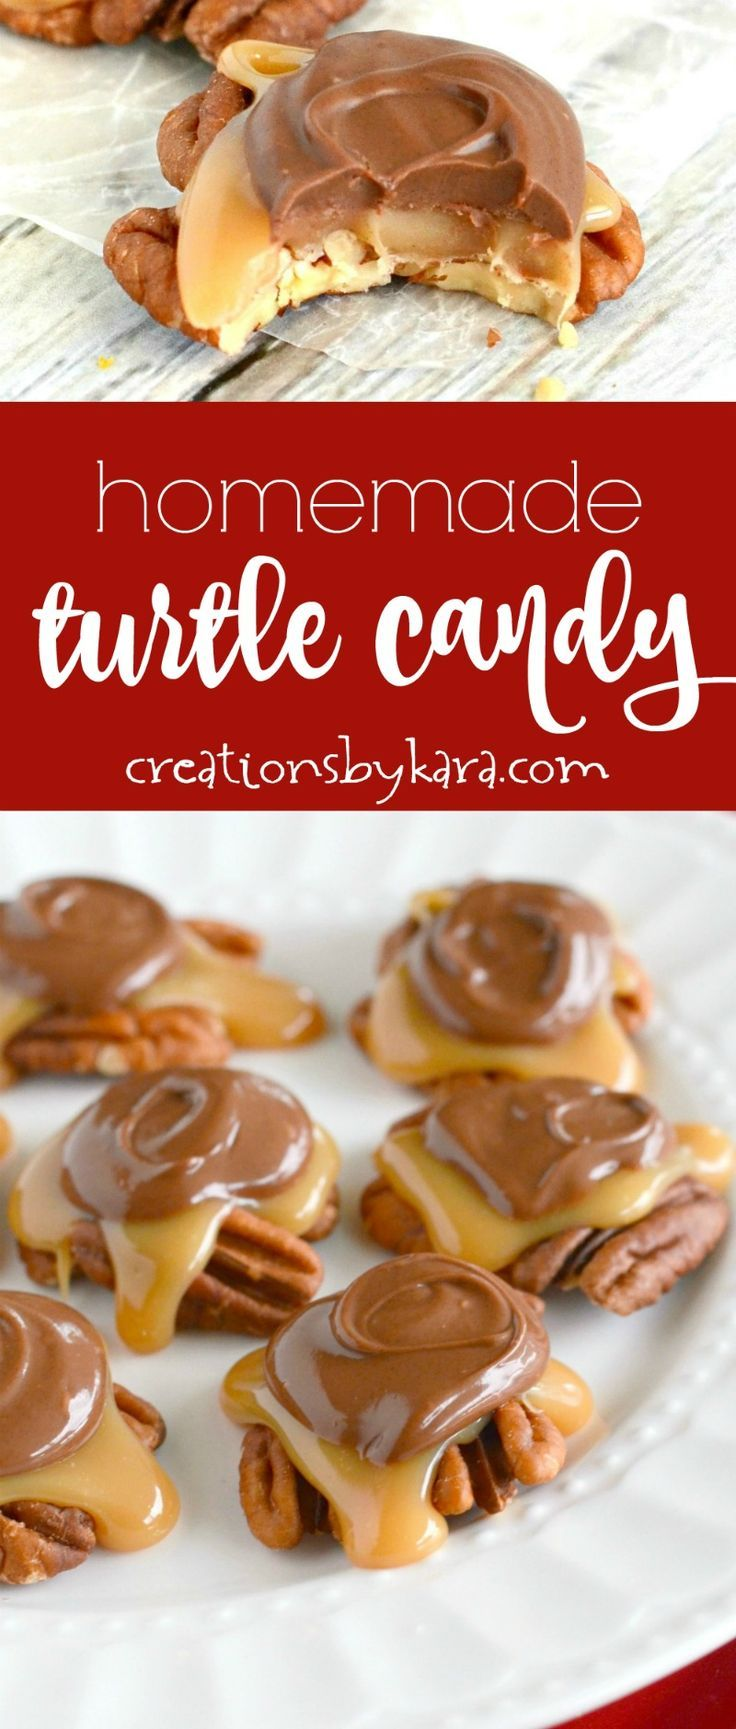 Recipe for the best caramel pecan turtle candy ever! So easy and so yummy! Everyone loves these chocolate covered caramel pecan clusters! via creationsbykara.com